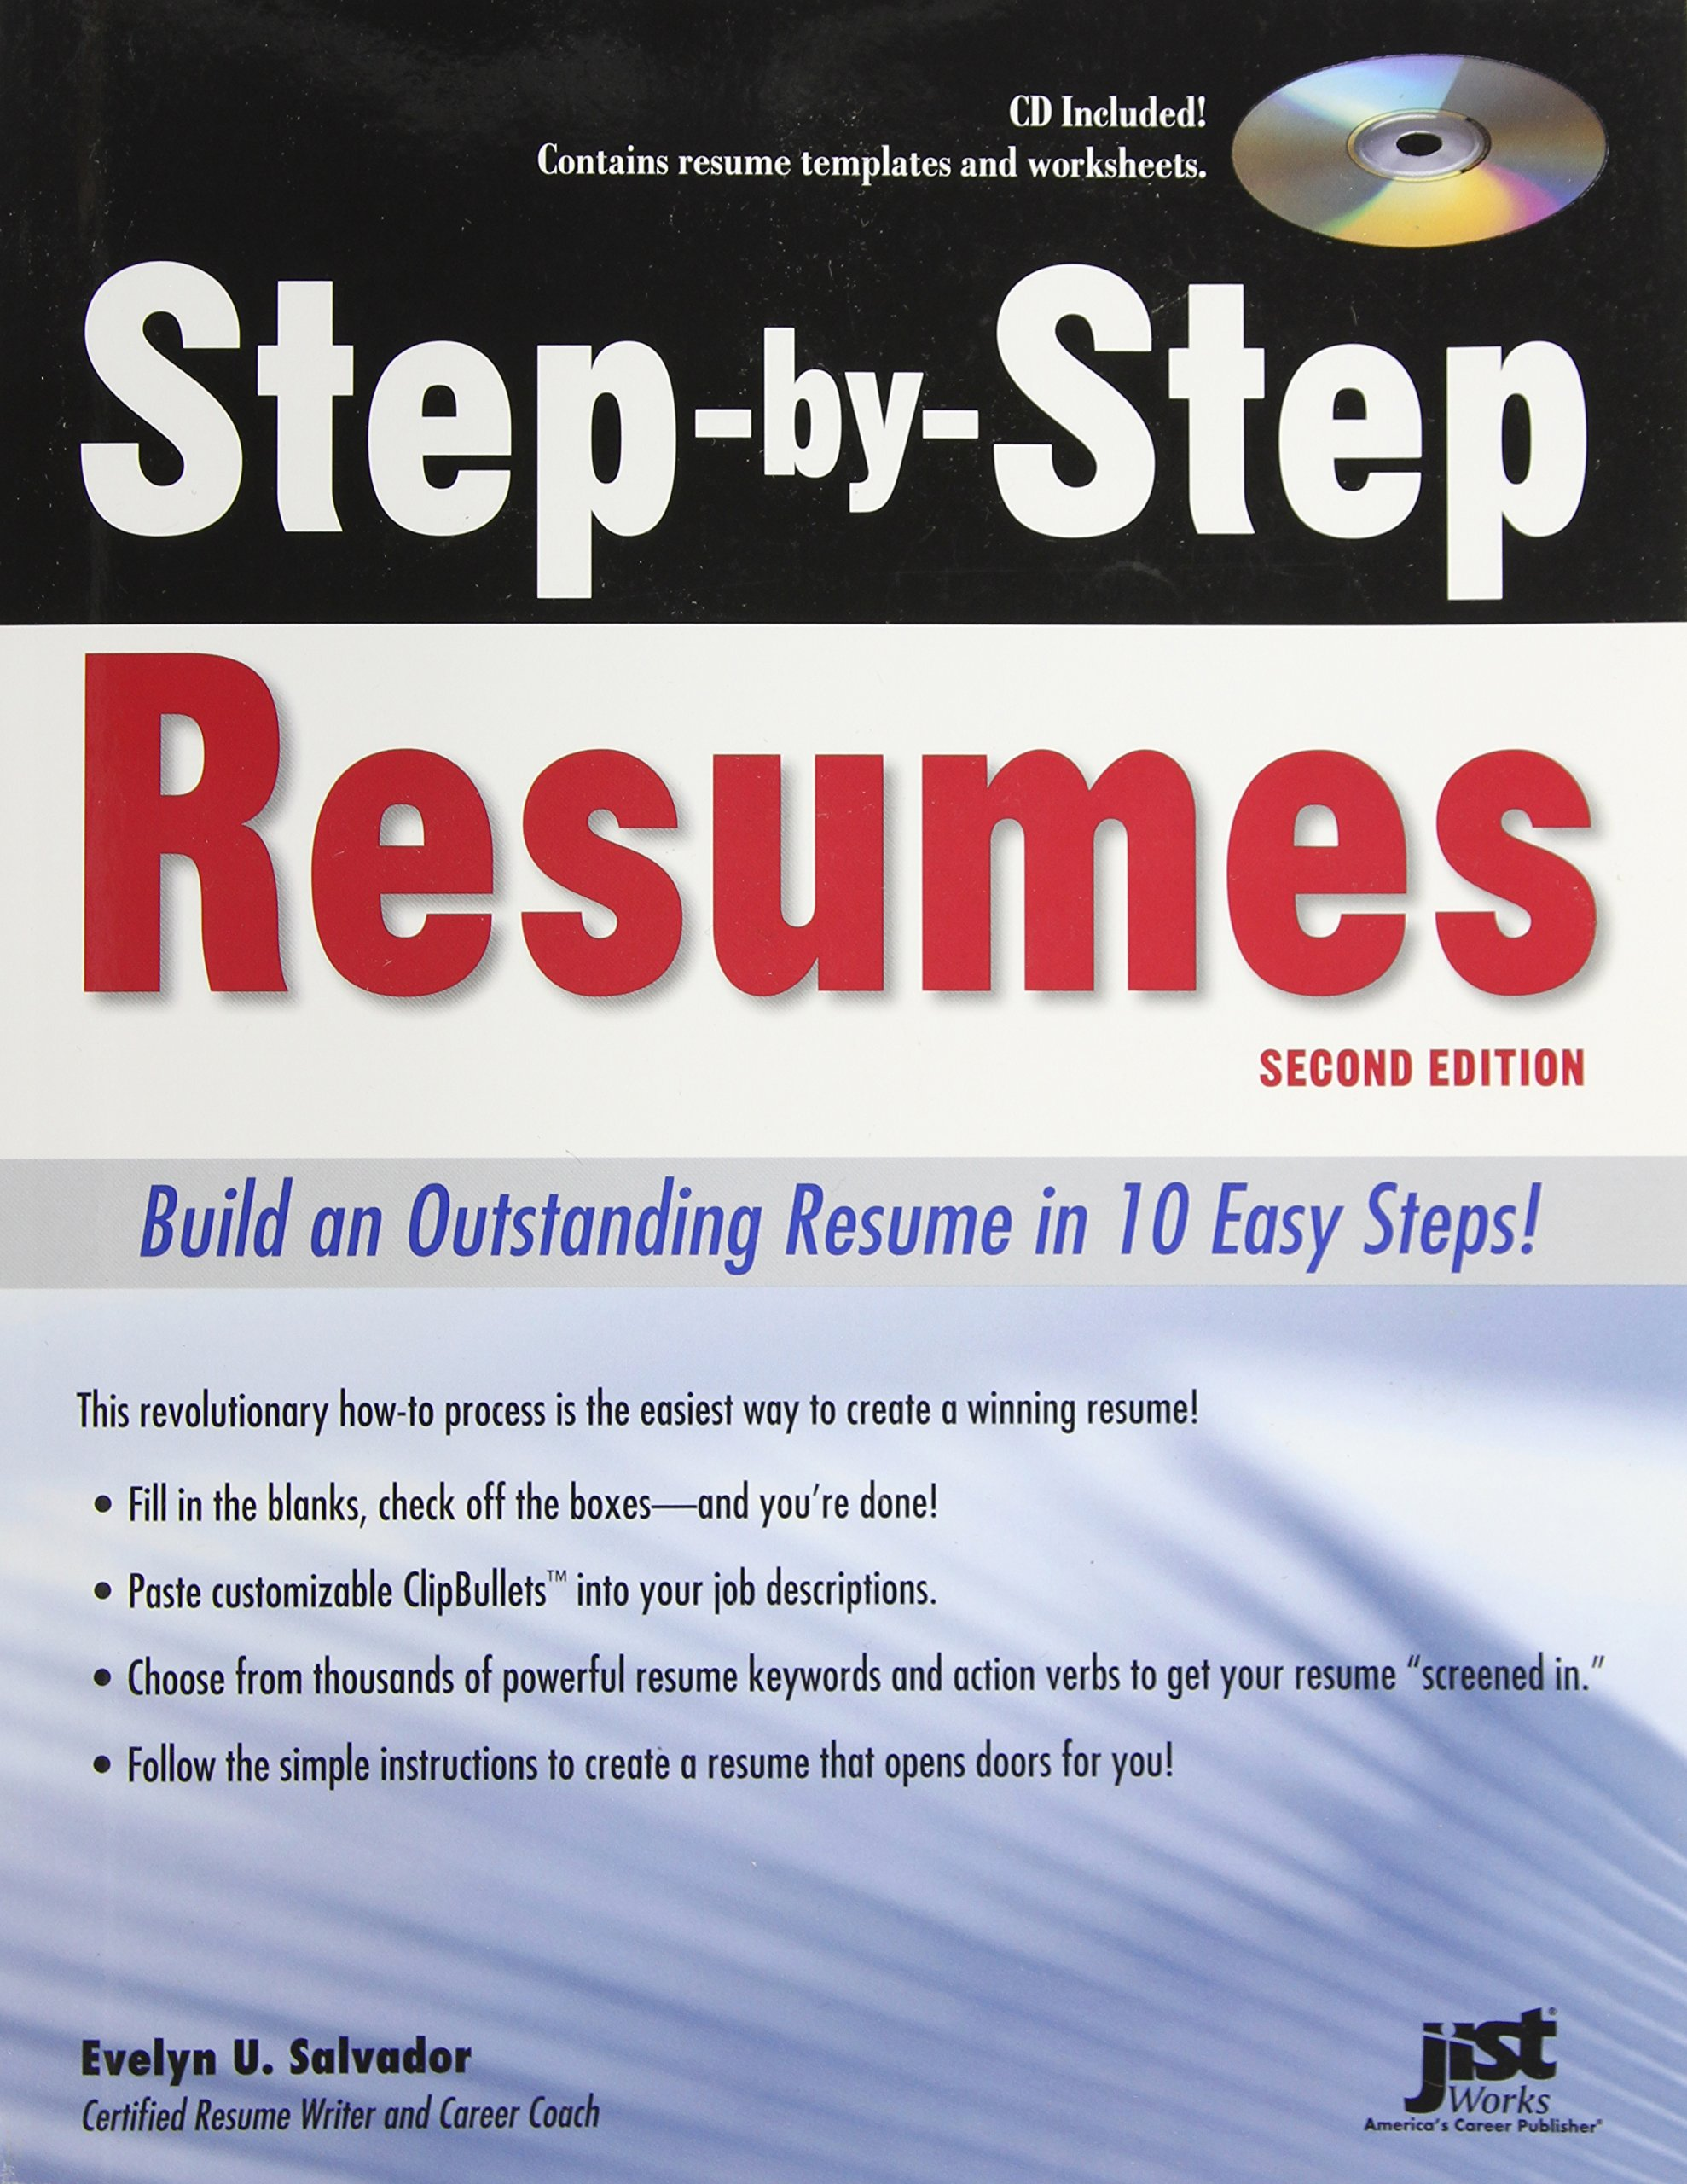 Step-by-Step Resumes: Build an Outstanding Resume in 10 Easy Steps ...